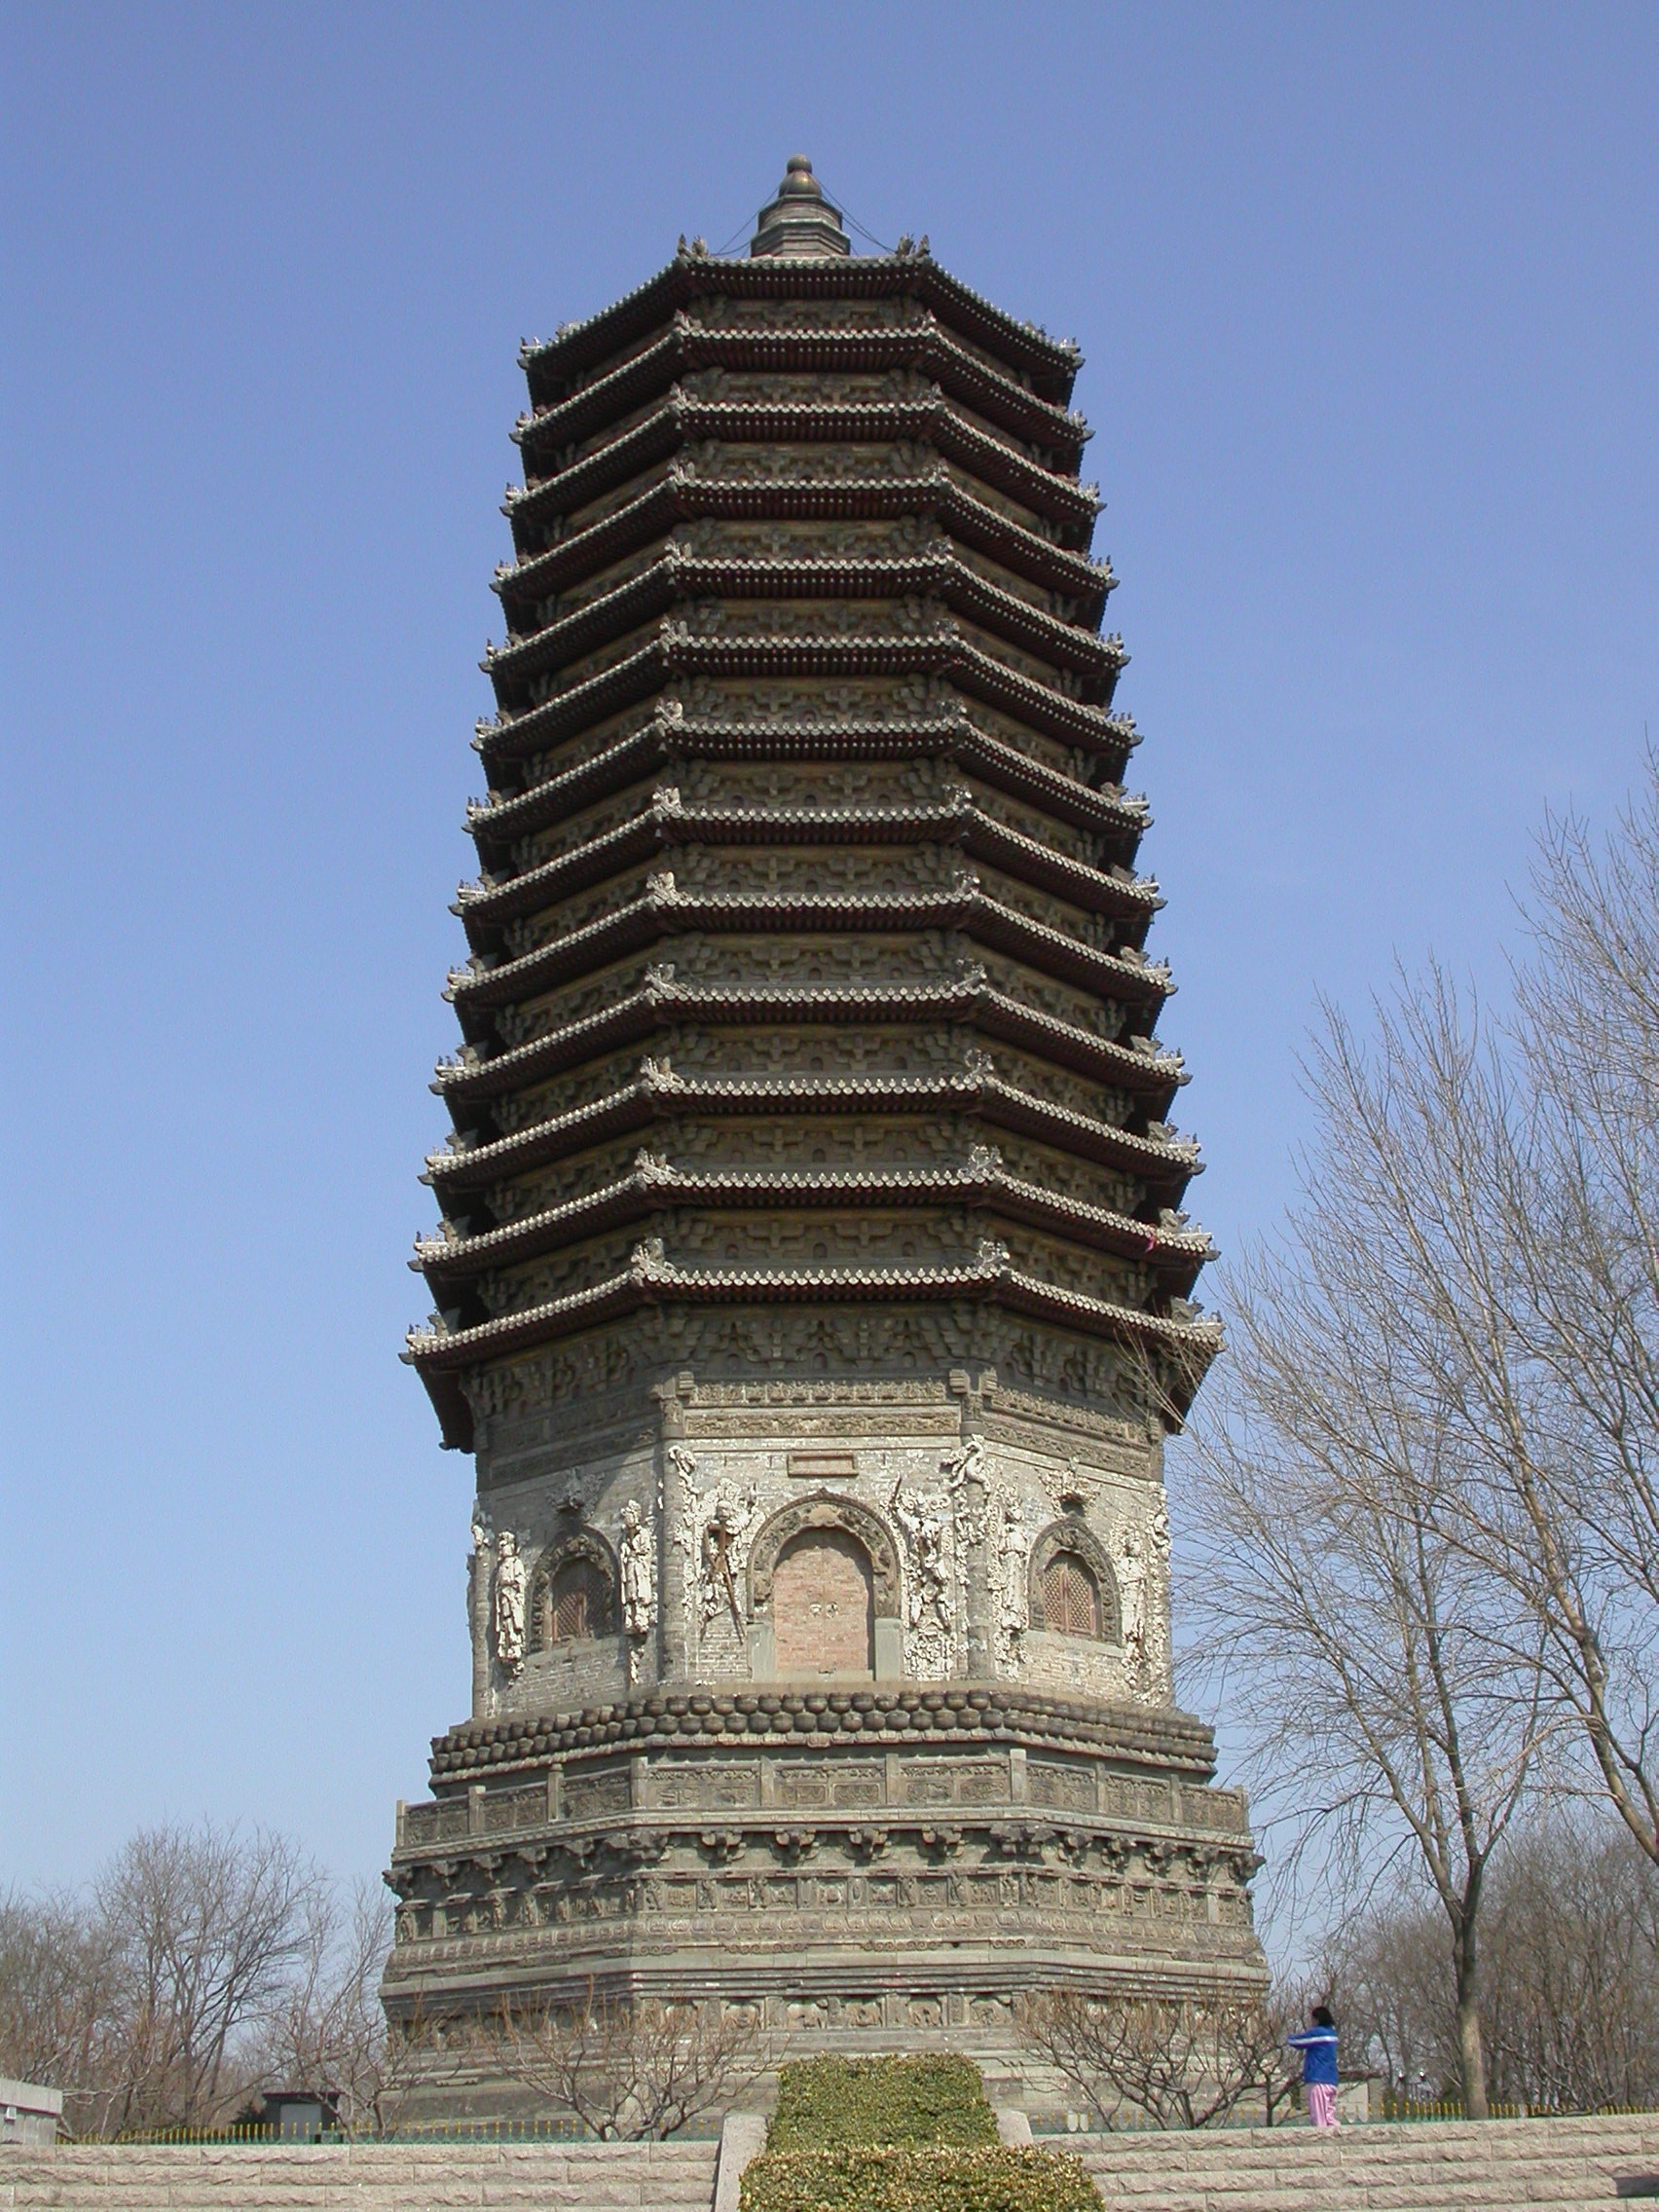 Cishou Temple Pagoda, built in 1576; the Chinese believed that building pagodas on certain sites according to geomantic principles brought about auspicious events; merchant-funding for such projects was needed by the late Ming period.